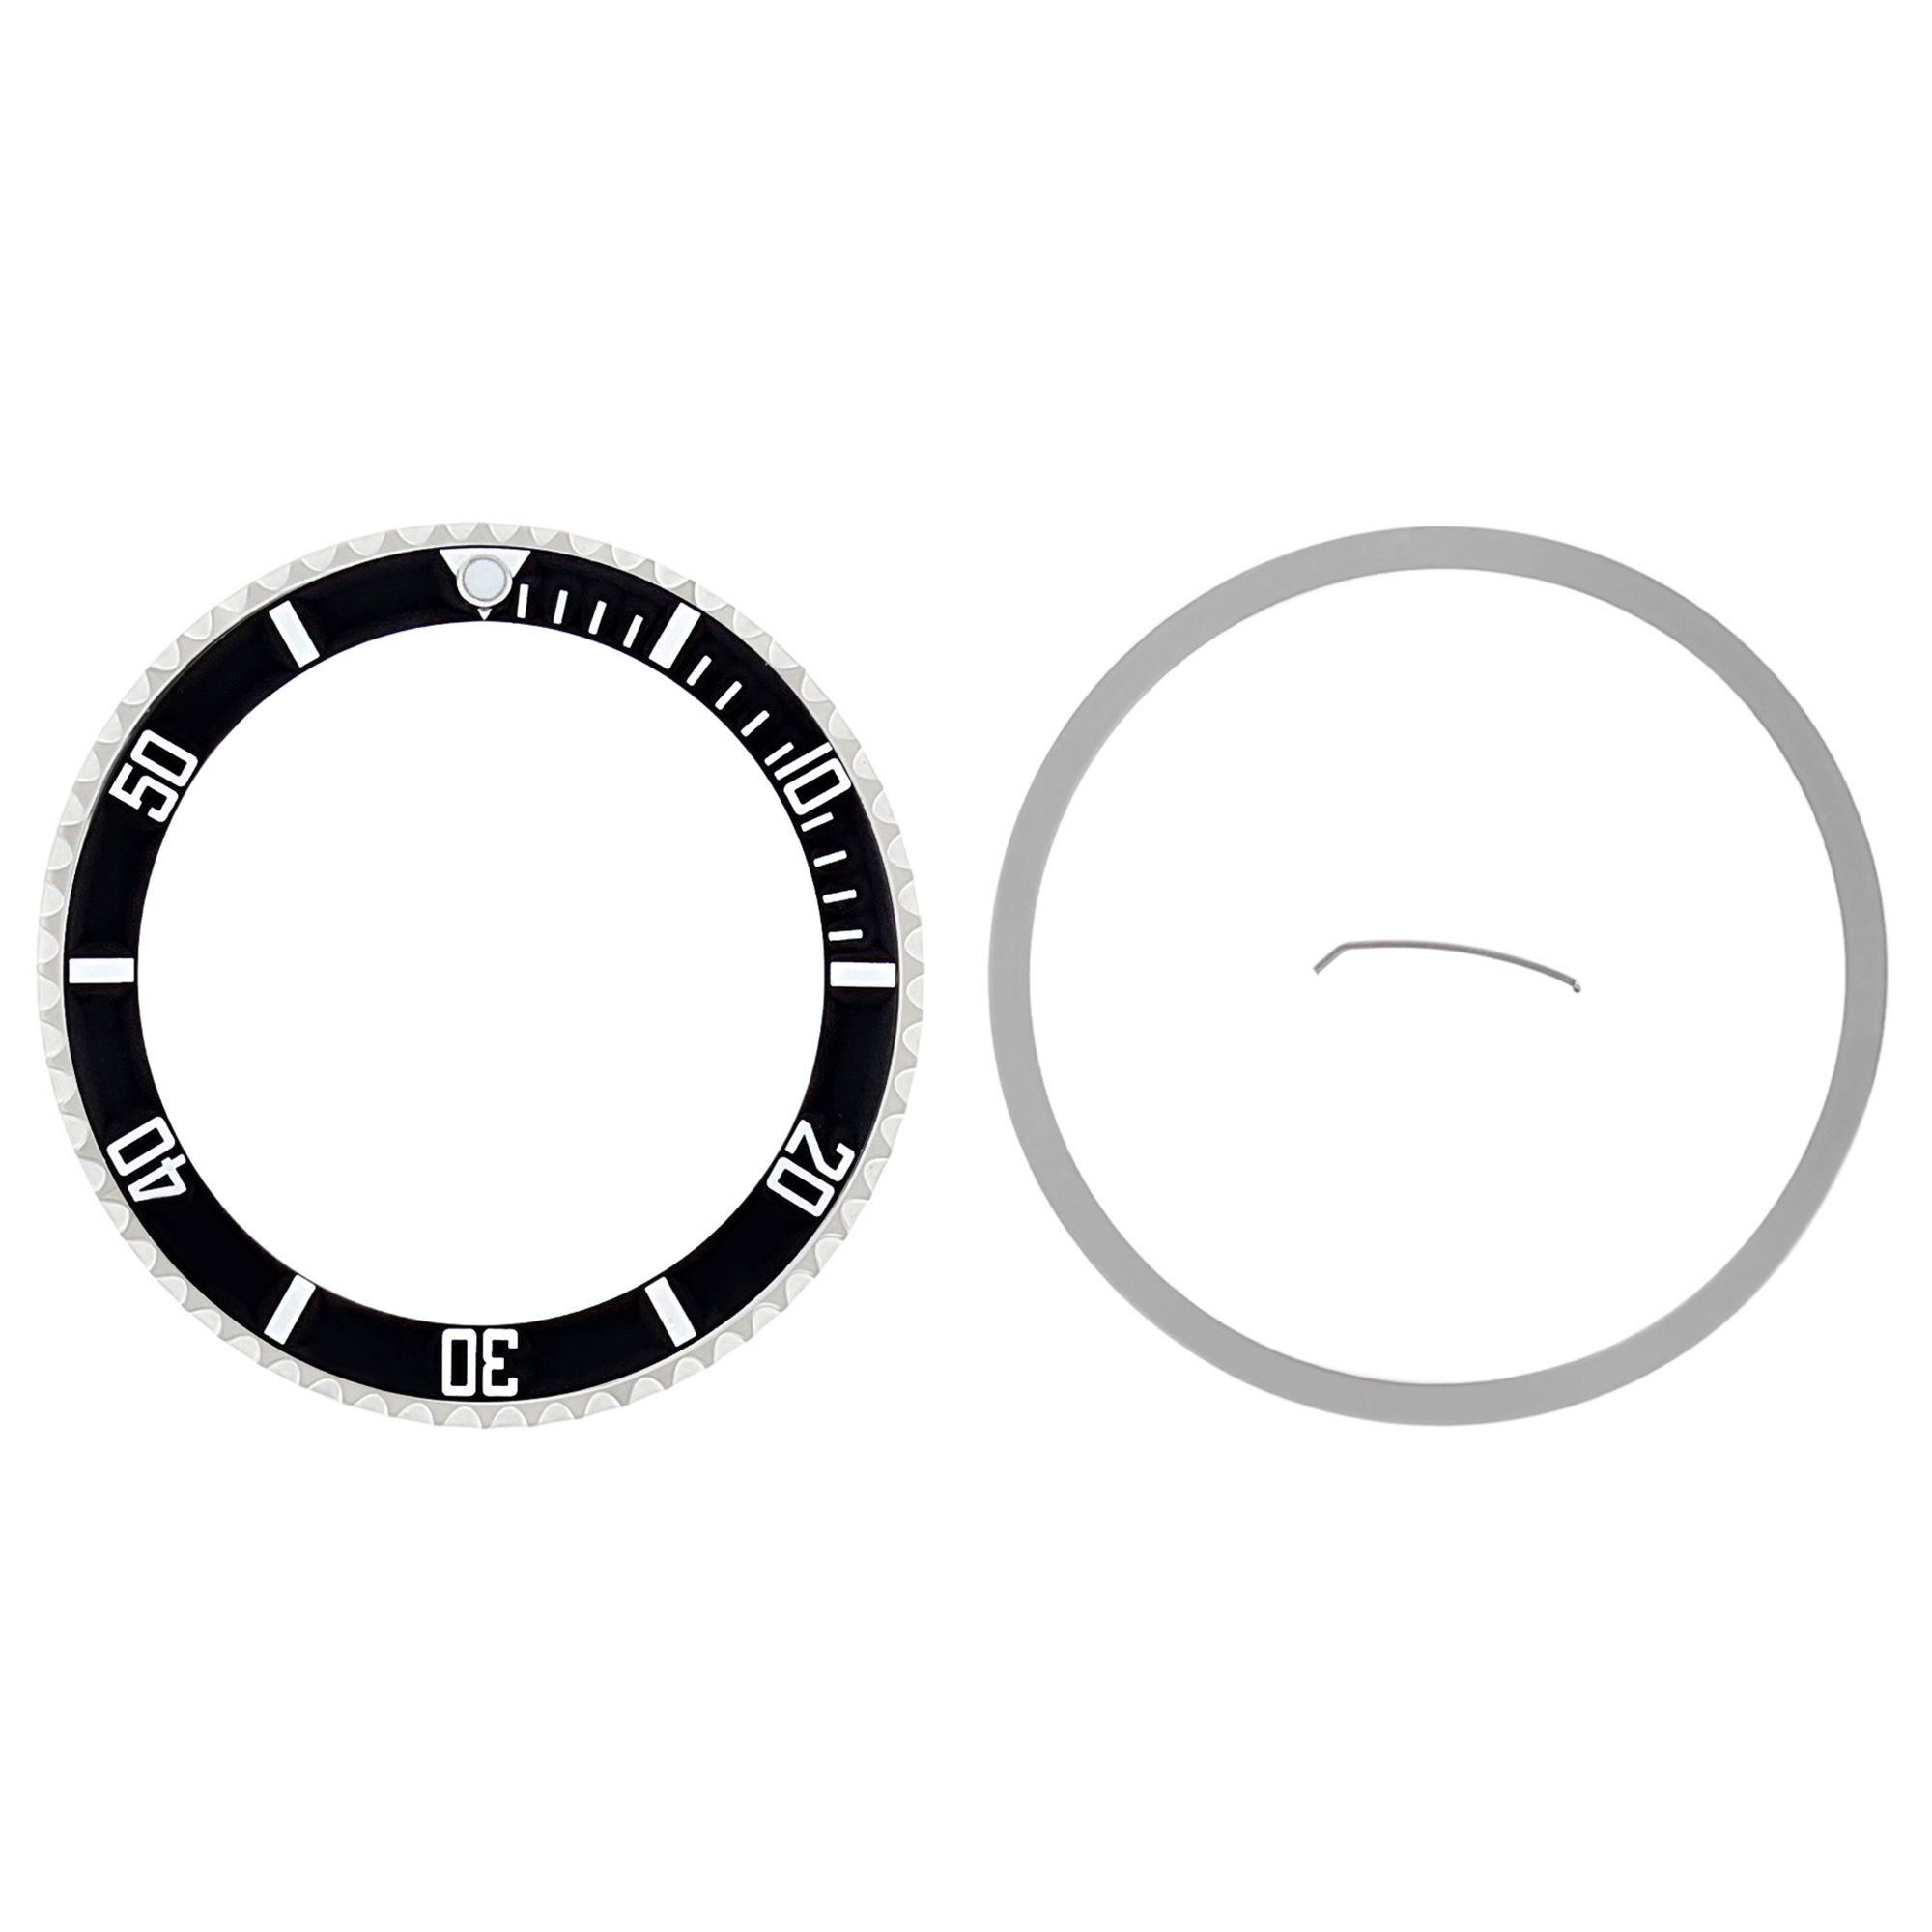 ROTATING BEZEL & INSERT FOR ROLEX NO DATE SUBMARINER 14060, 14060M BLACK